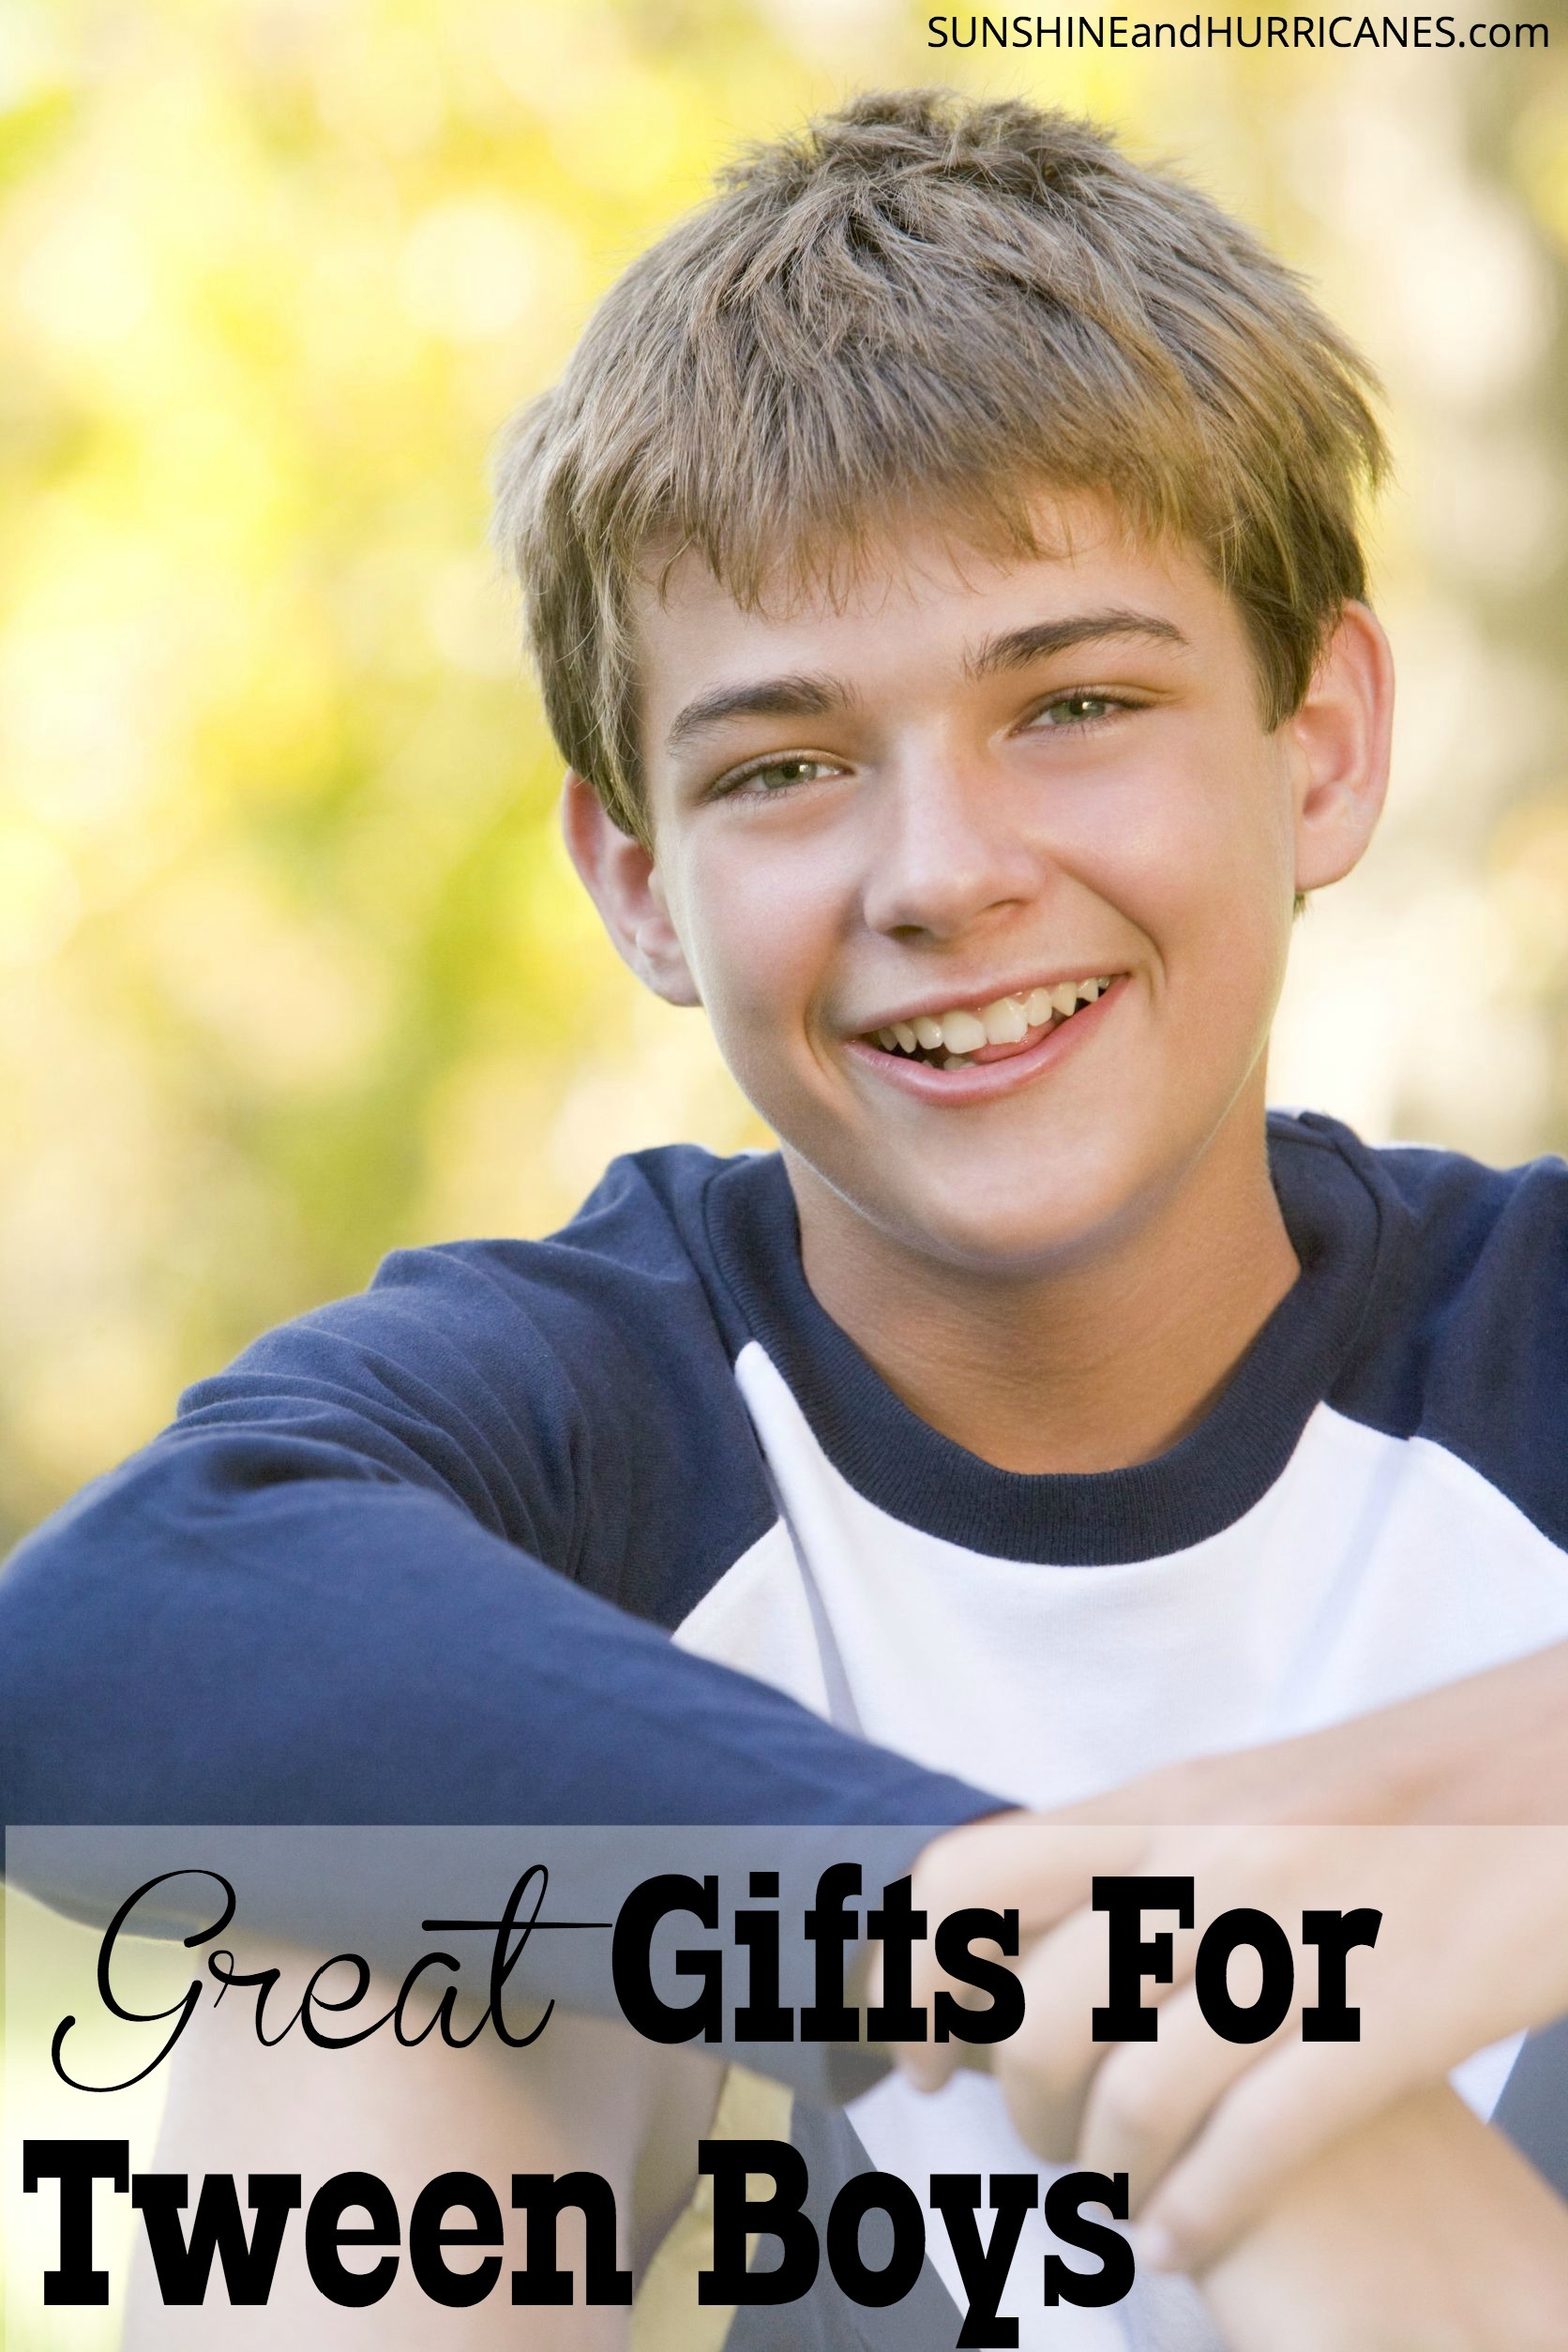 Searching for that perfect gift for a tween boy? We've got lots of ideas that'll be ahit with any boy in 5th to 8th grade and beyond. This in between age can be a challenge and these screen free options will keep his mind engaged. Great gifts for Tween Boys.